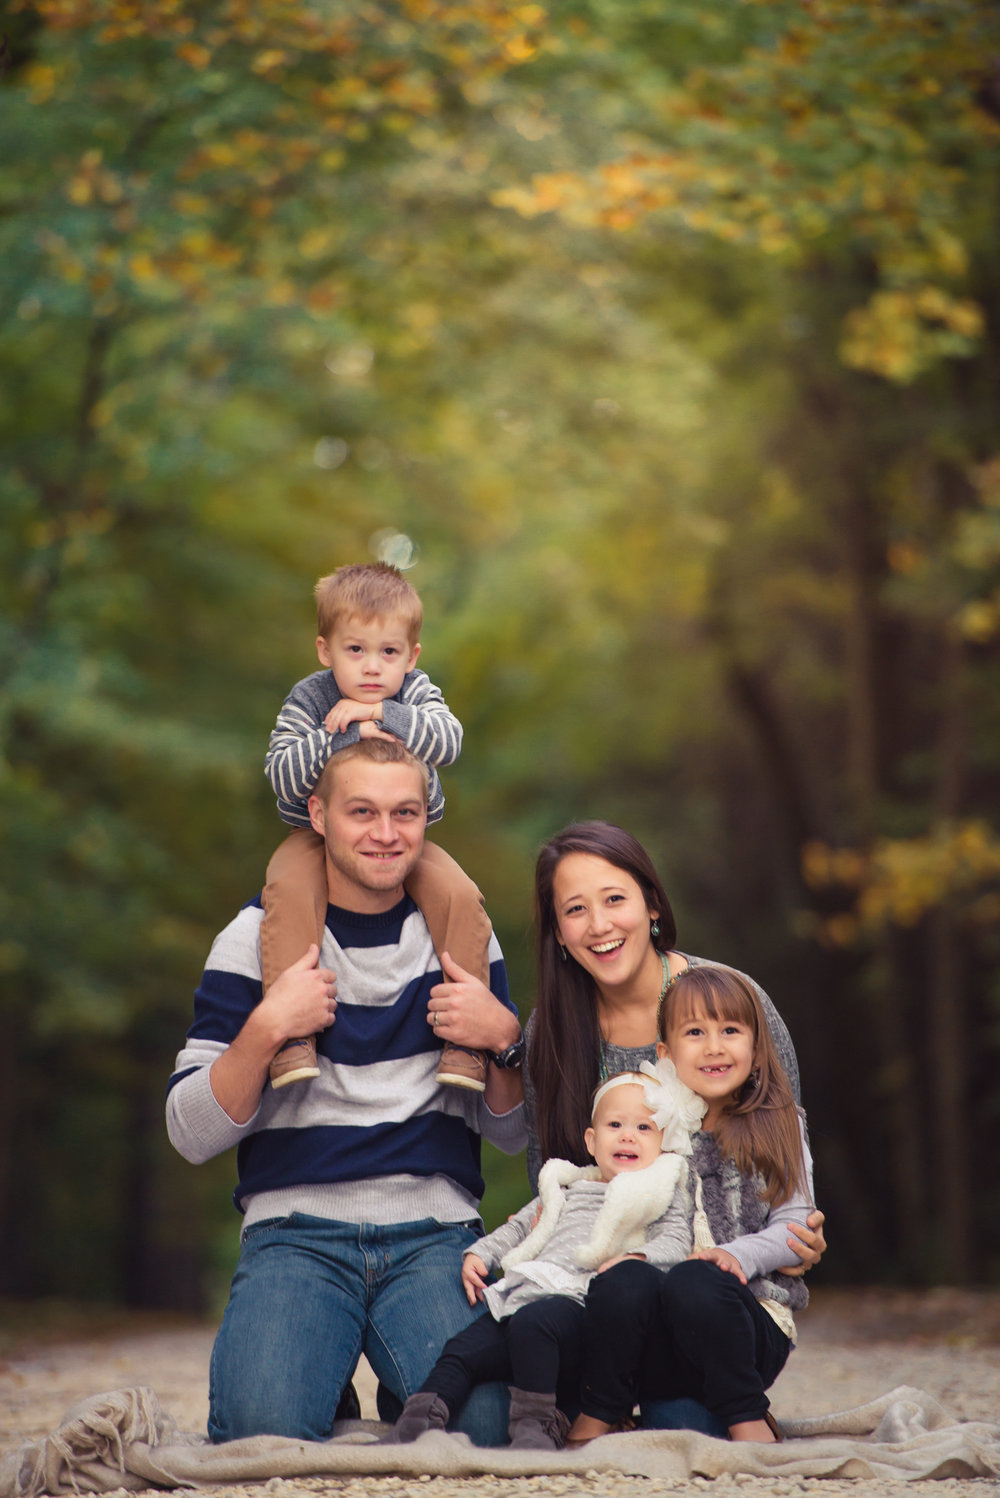 Naperville, IL family photographer | Louisa Nickel Photography-17.jpg